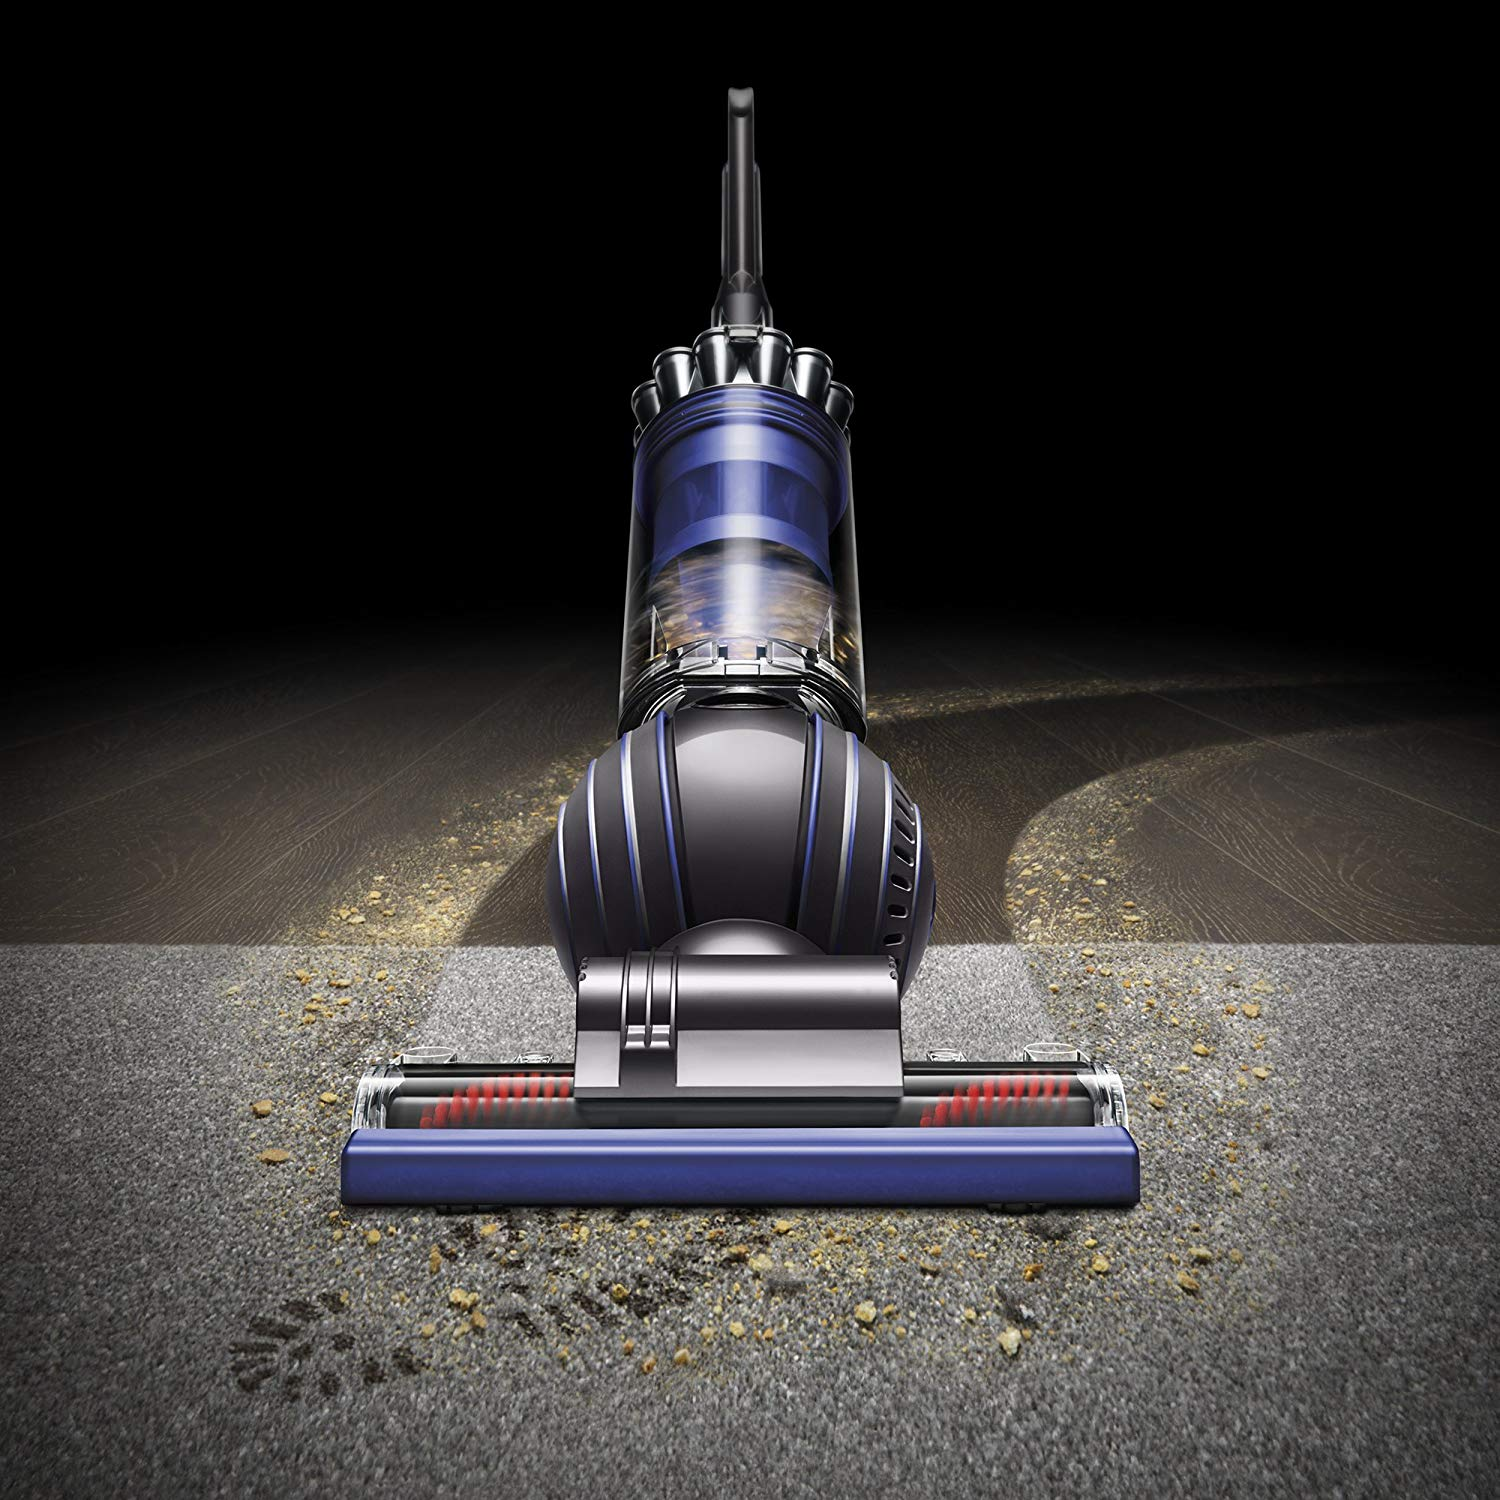 Dyson-Ball-Animal-2-Upright-Vacuum-Cleaner